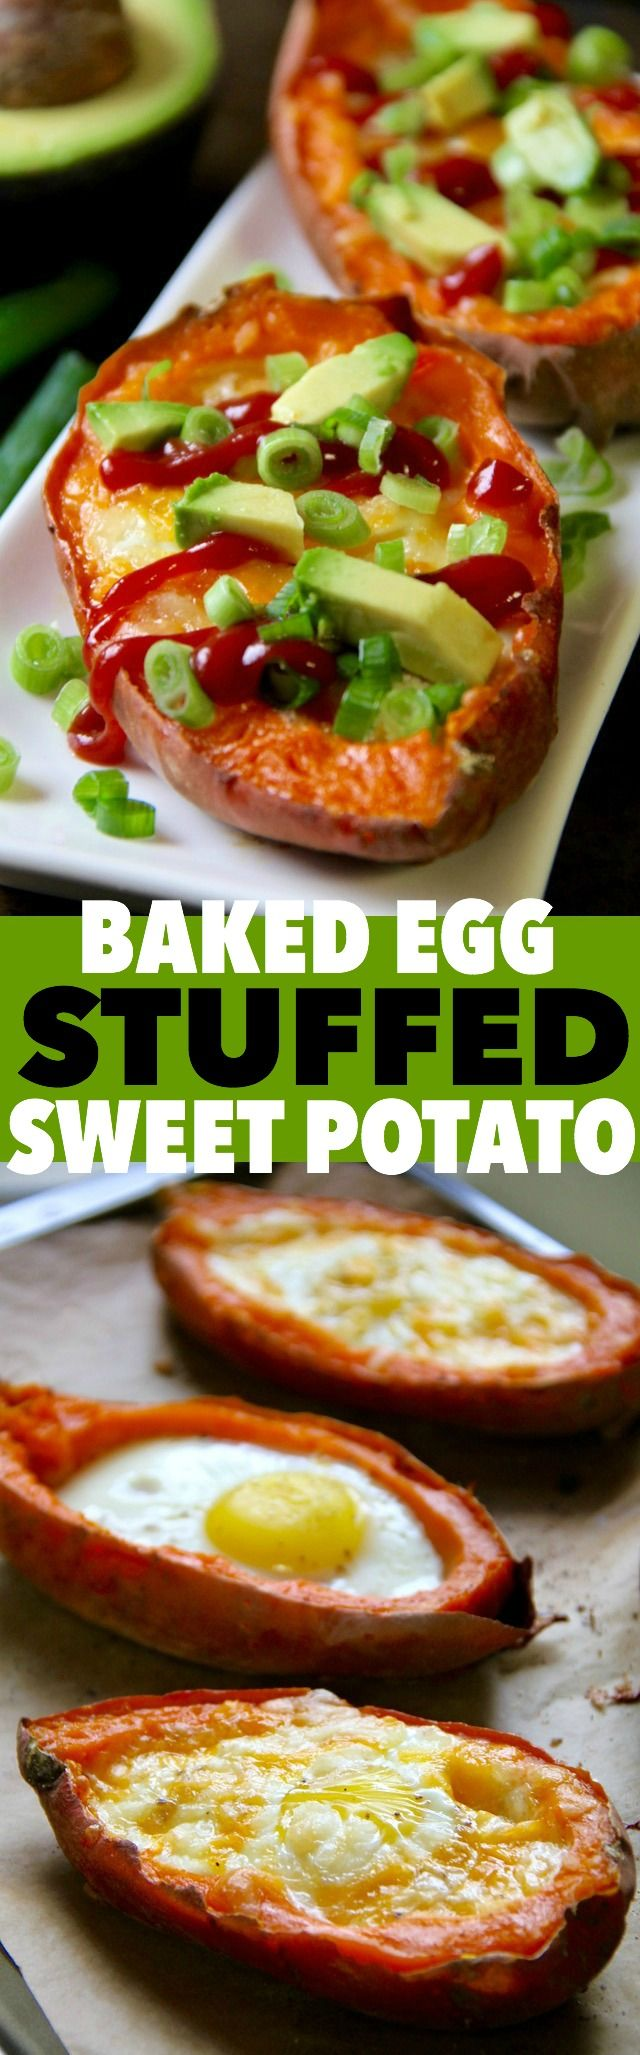 These quick and easy Baked Egg Stuffed Sweet Potatoes are a perfect choice for those nights where you don't have a lot of time or energy to put into cooking. Gluten-free and vegetarian, they make a healthy and balanced meal with minimal hands-on time and no cleanup! || runningwfithspoons.com #vegetarian #glutenfree #healthy #dinner